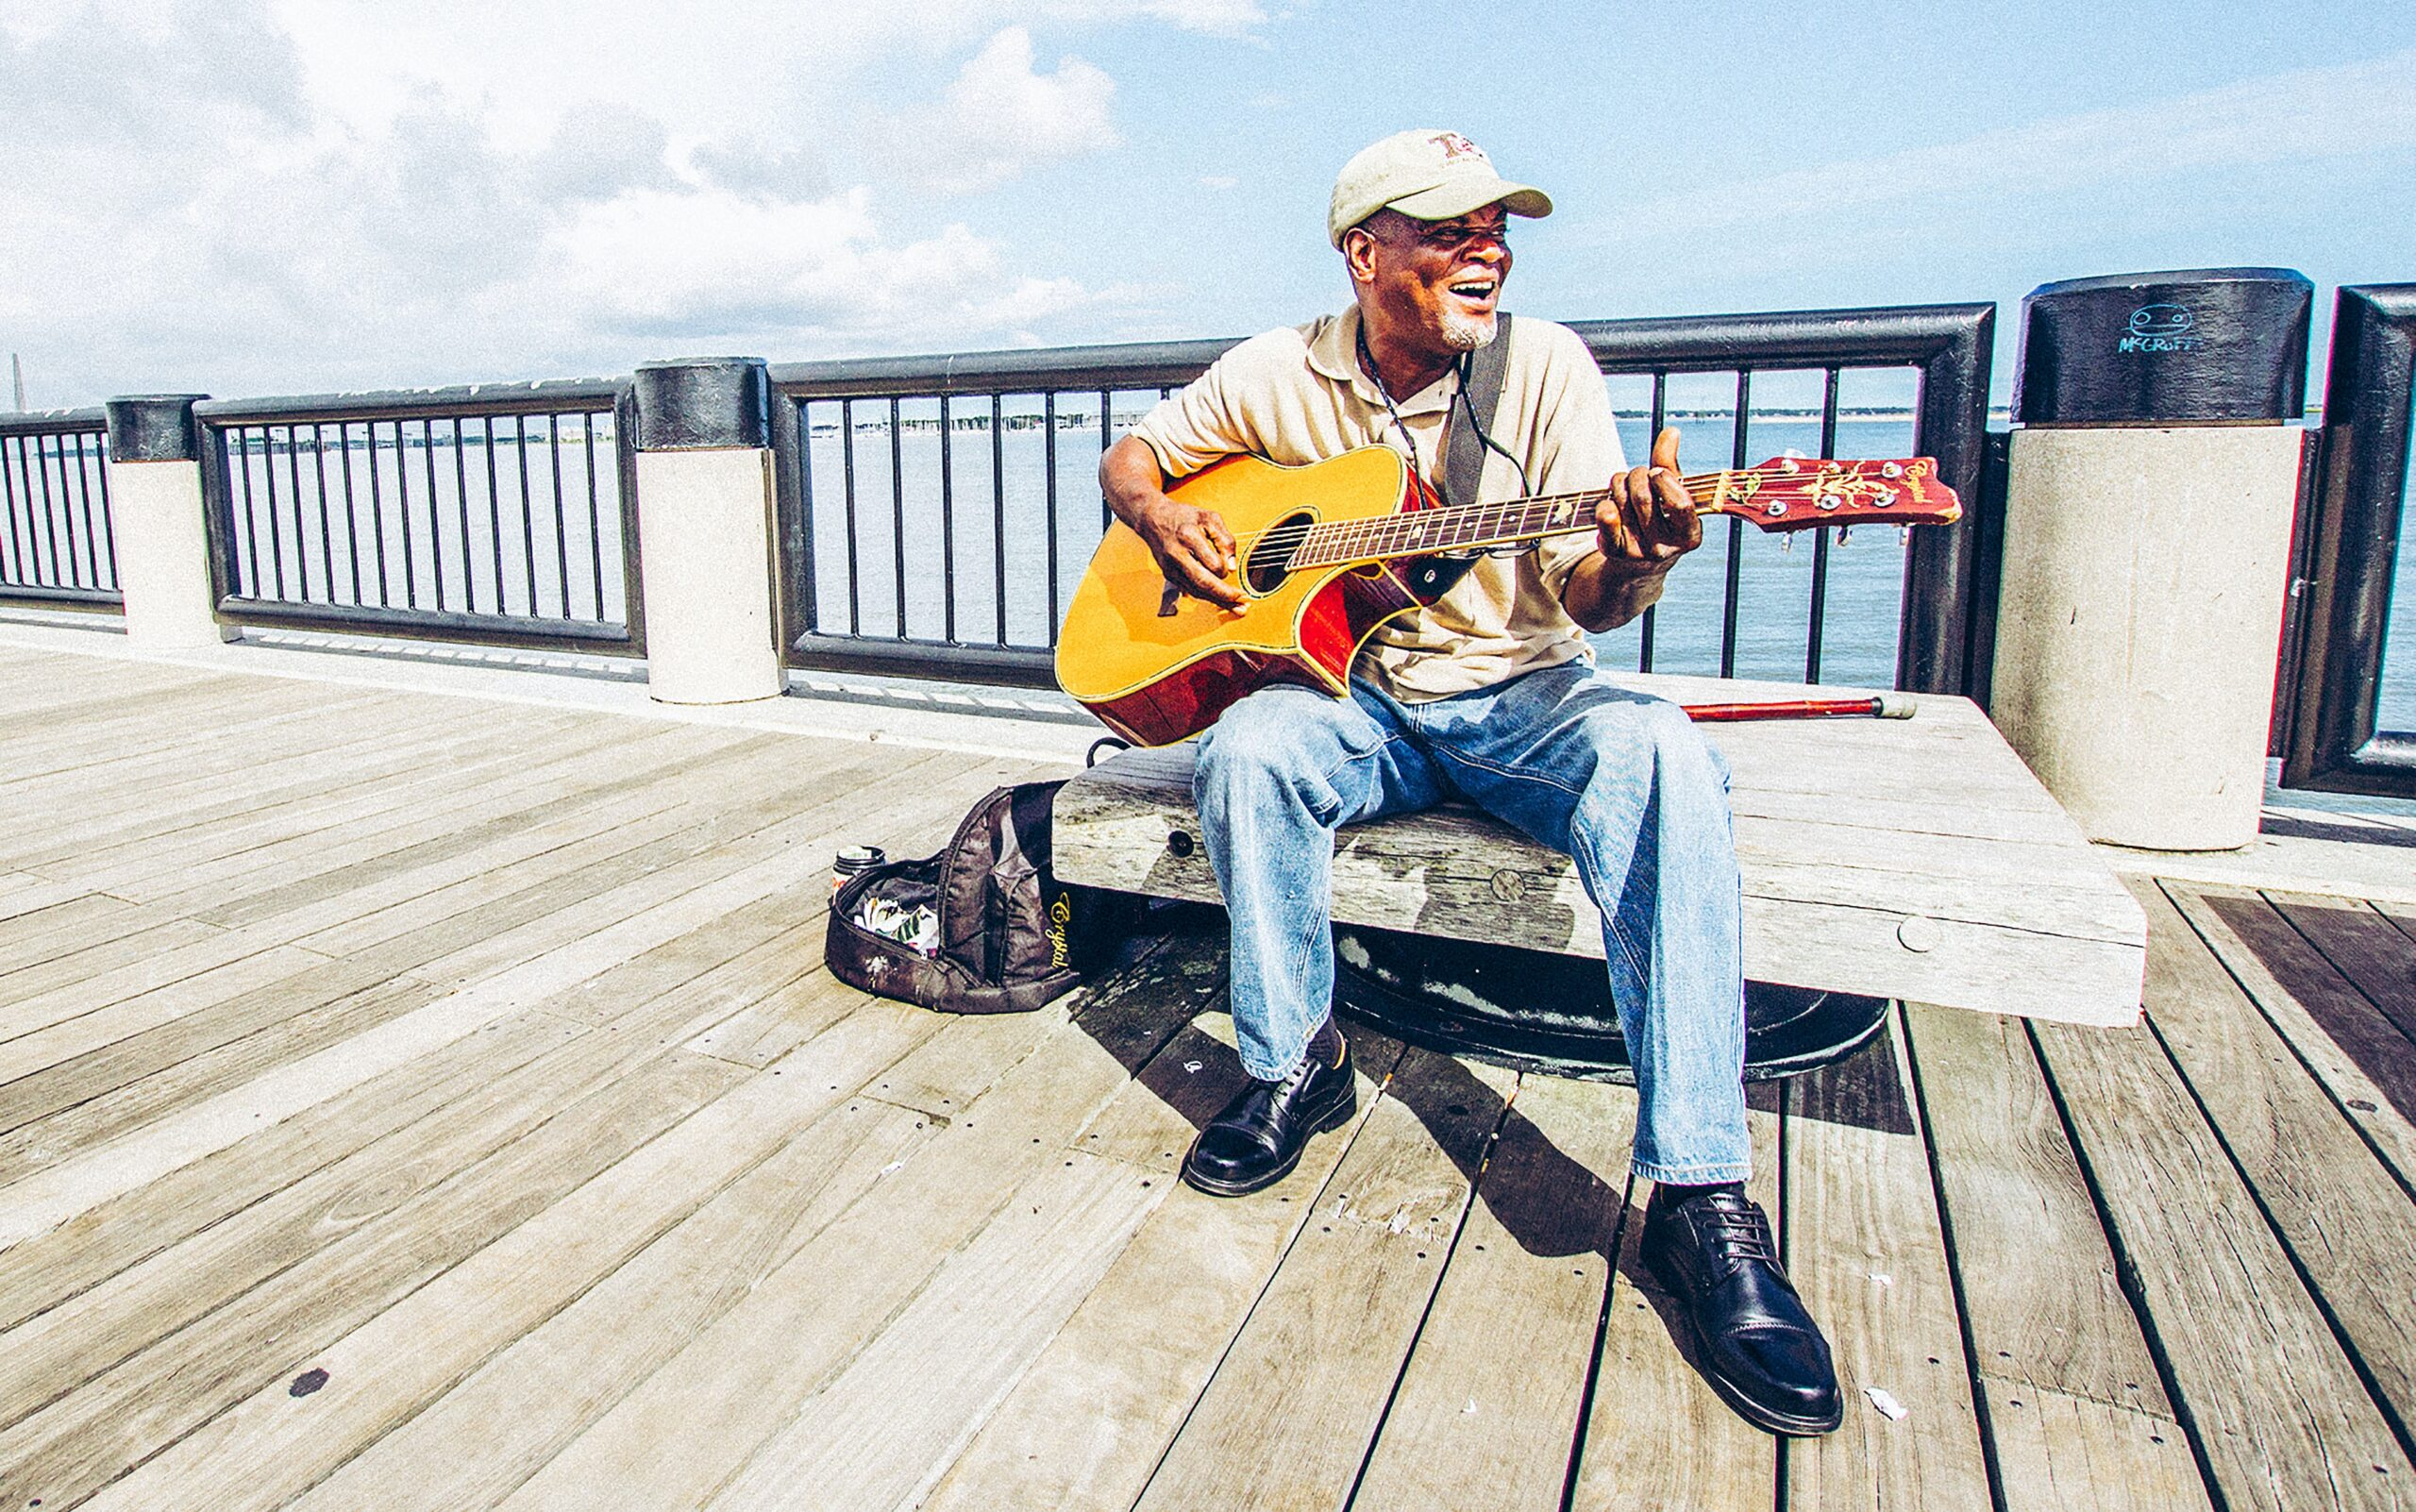 Man Sitting On Bench While Playing Guitar   10 Simple Ways To Find The Best Guitar Lessons